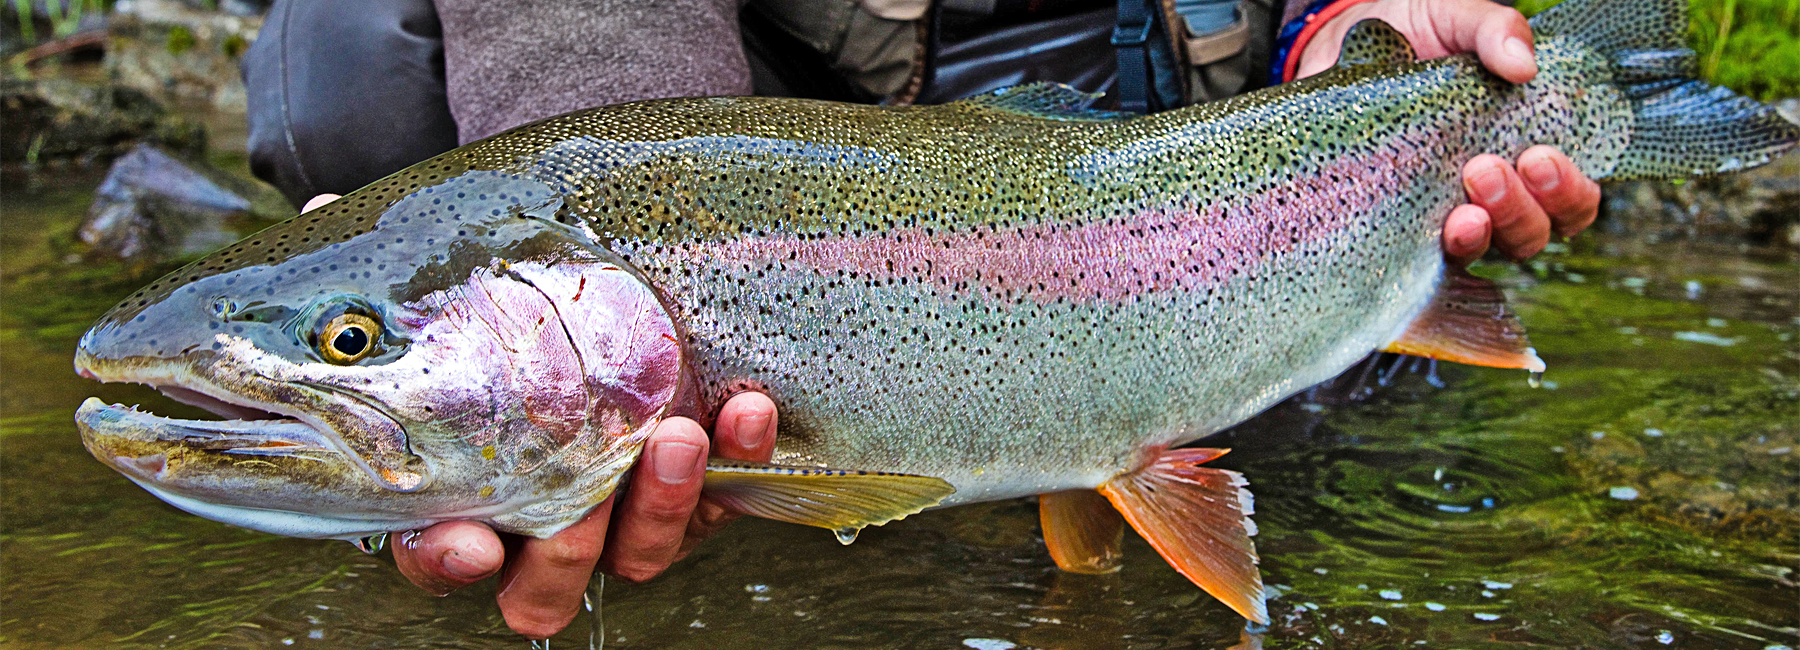 Rainbow trout fly fishing rainbow trout fishing lodges for Rainbow fish pictures